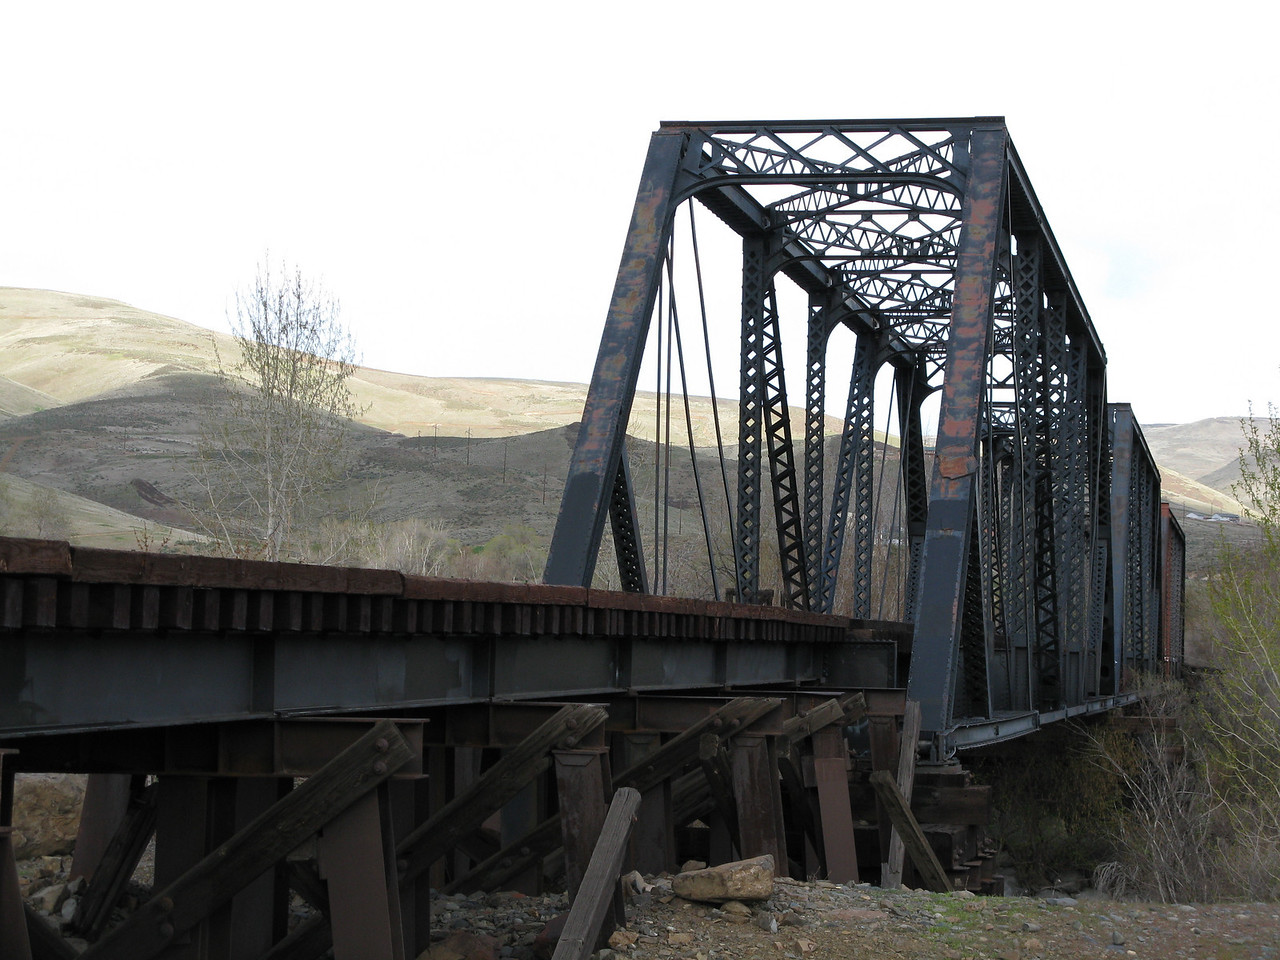 Another view of the railroad bridge.